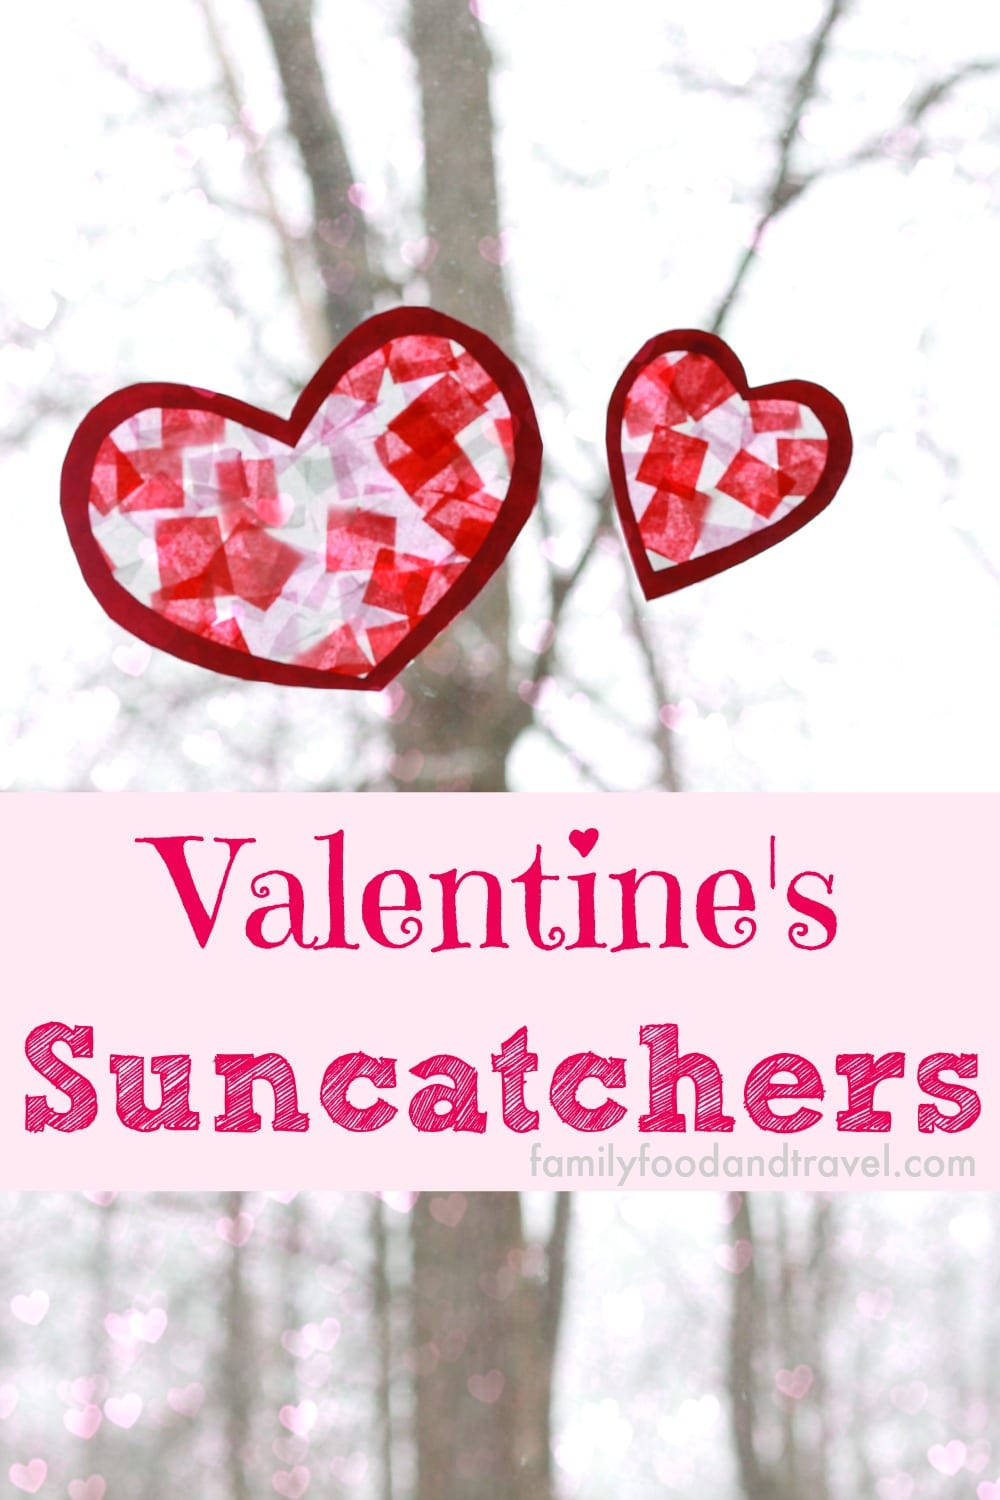 Easy to Make Heart Suncatchers